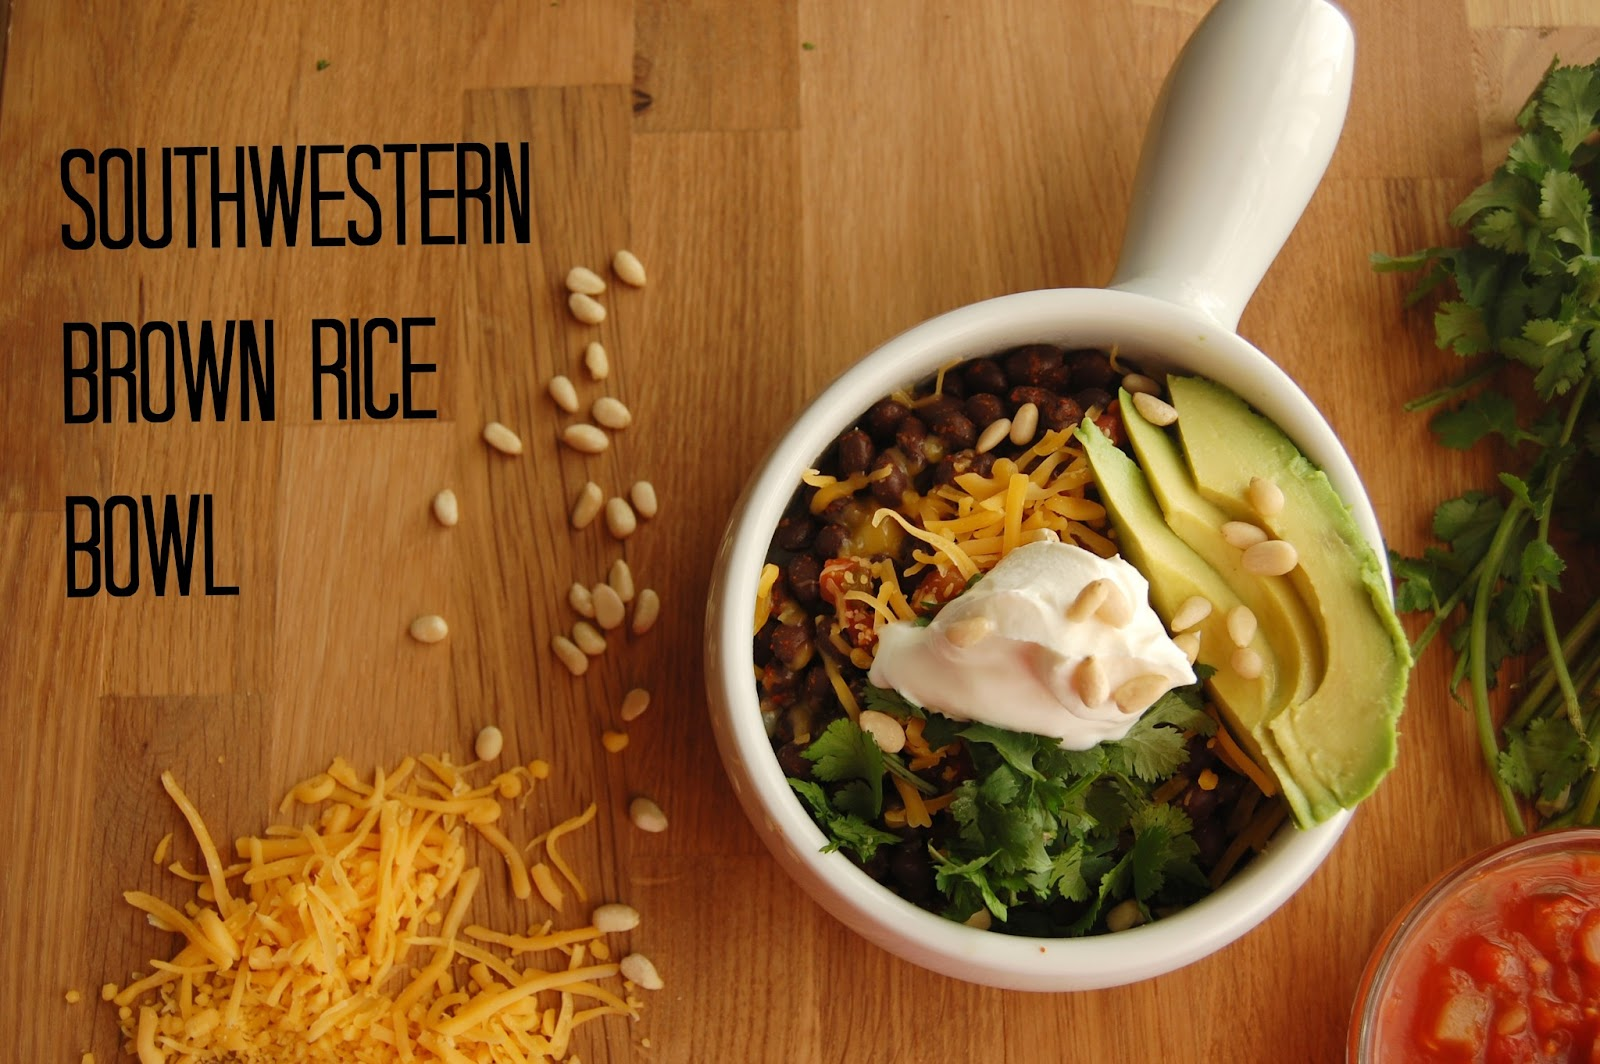 Southwest Brown Rice Bowl